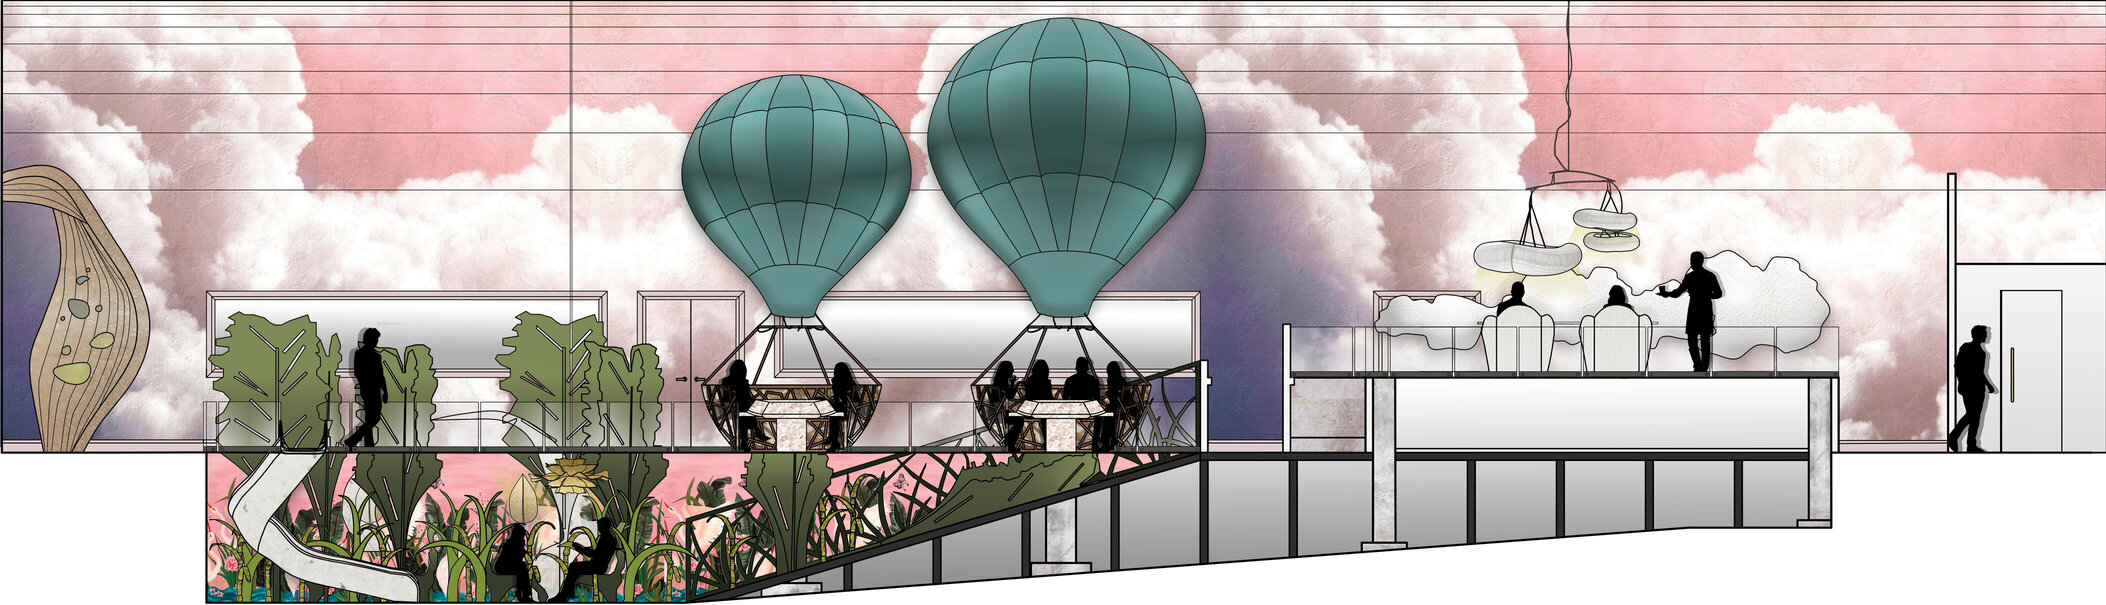 The Looking Glass, Main Space Render, Set 1 'A Change of Air', Set 3 'The Boroughgroves' & Set 4 'Off to the Land of Nod'